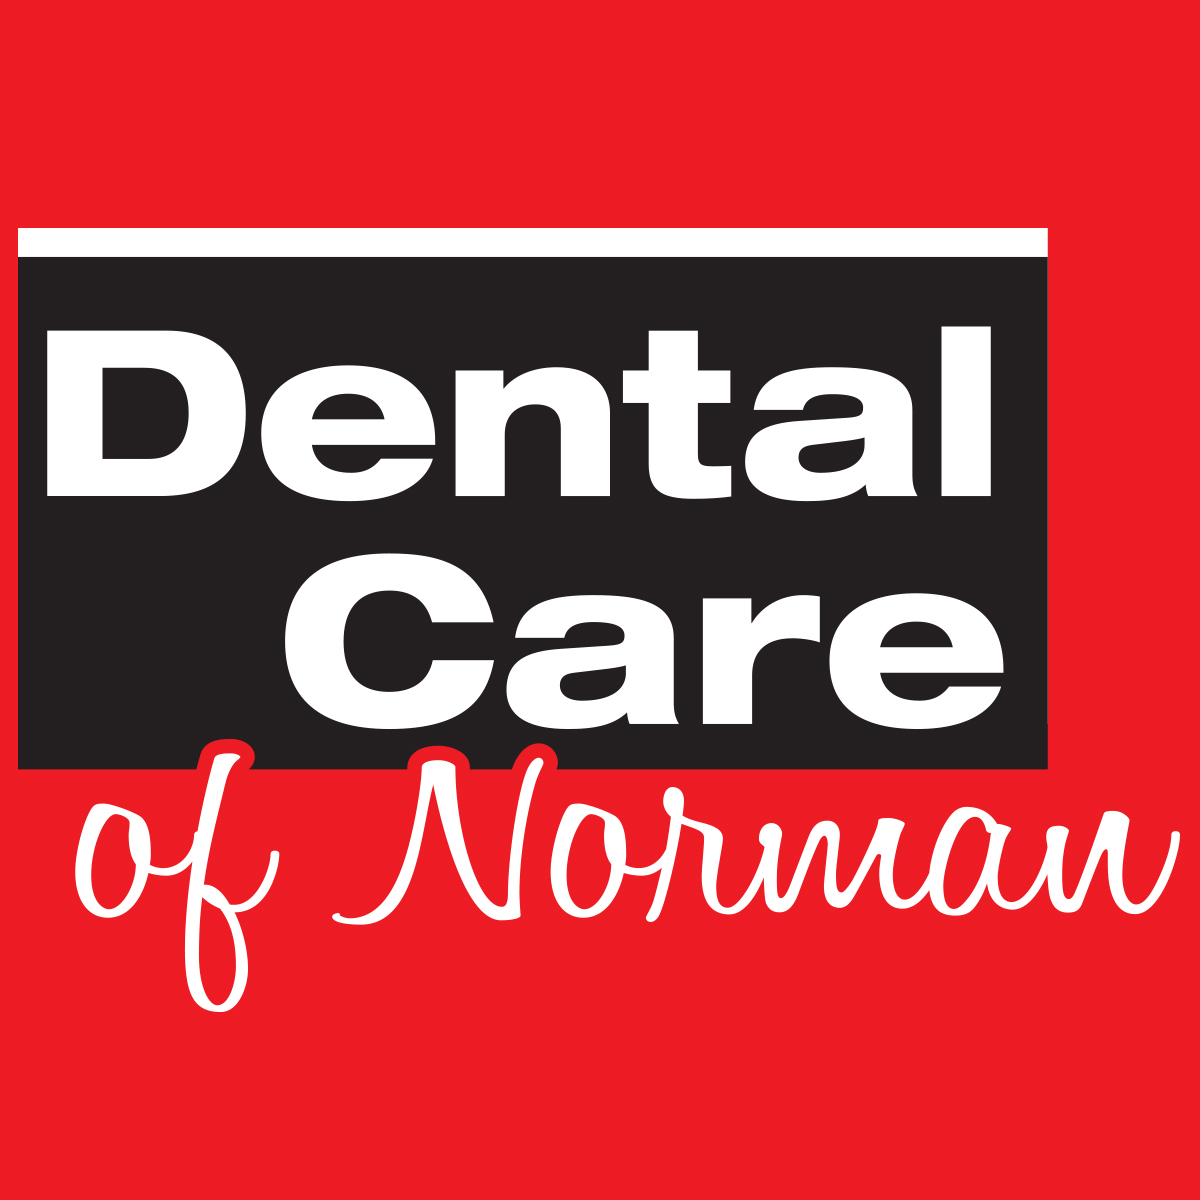 Dental Care of Norman